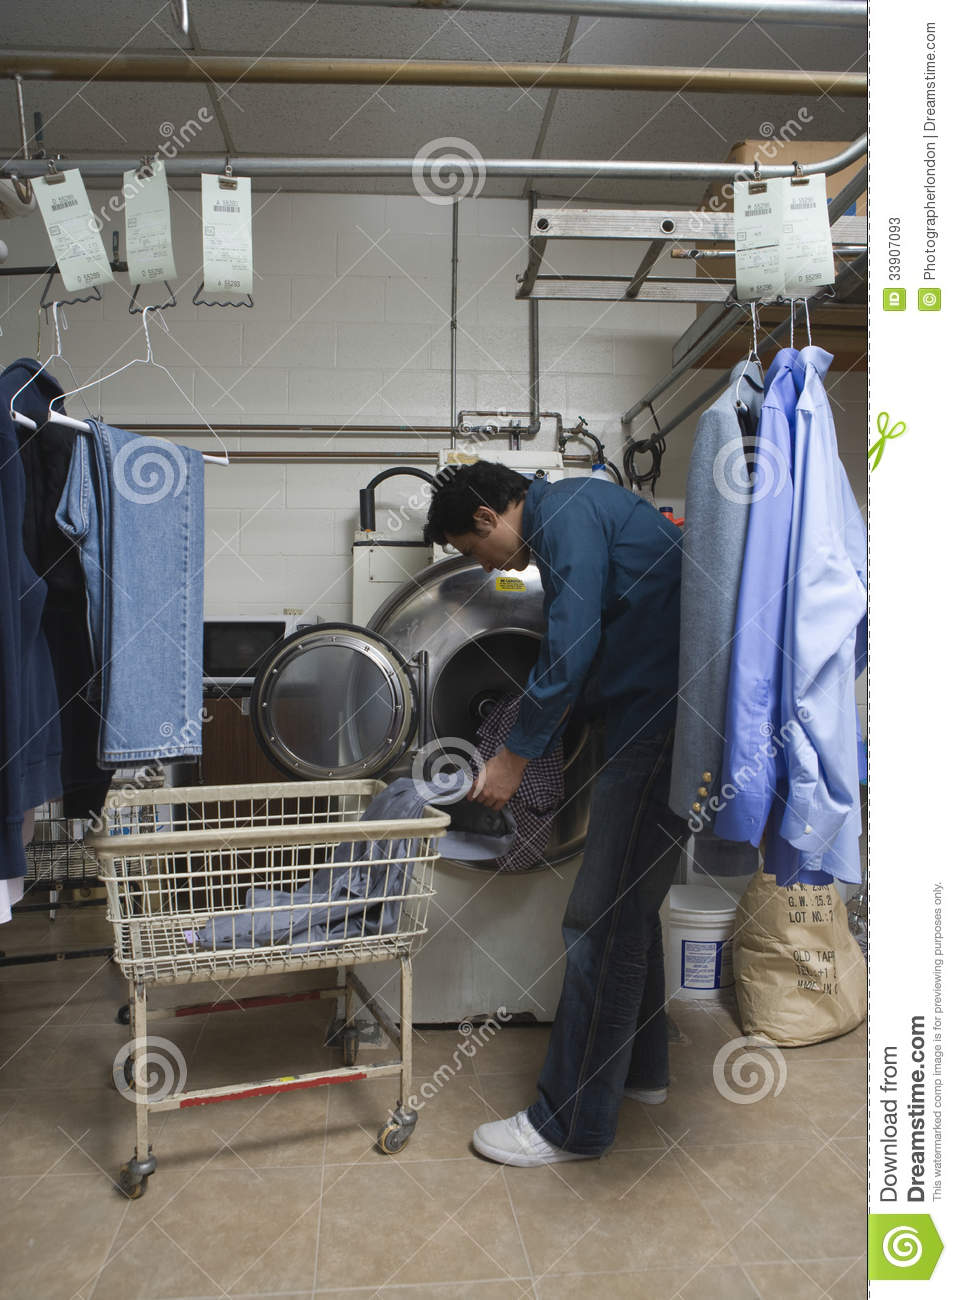 Dry store clothing